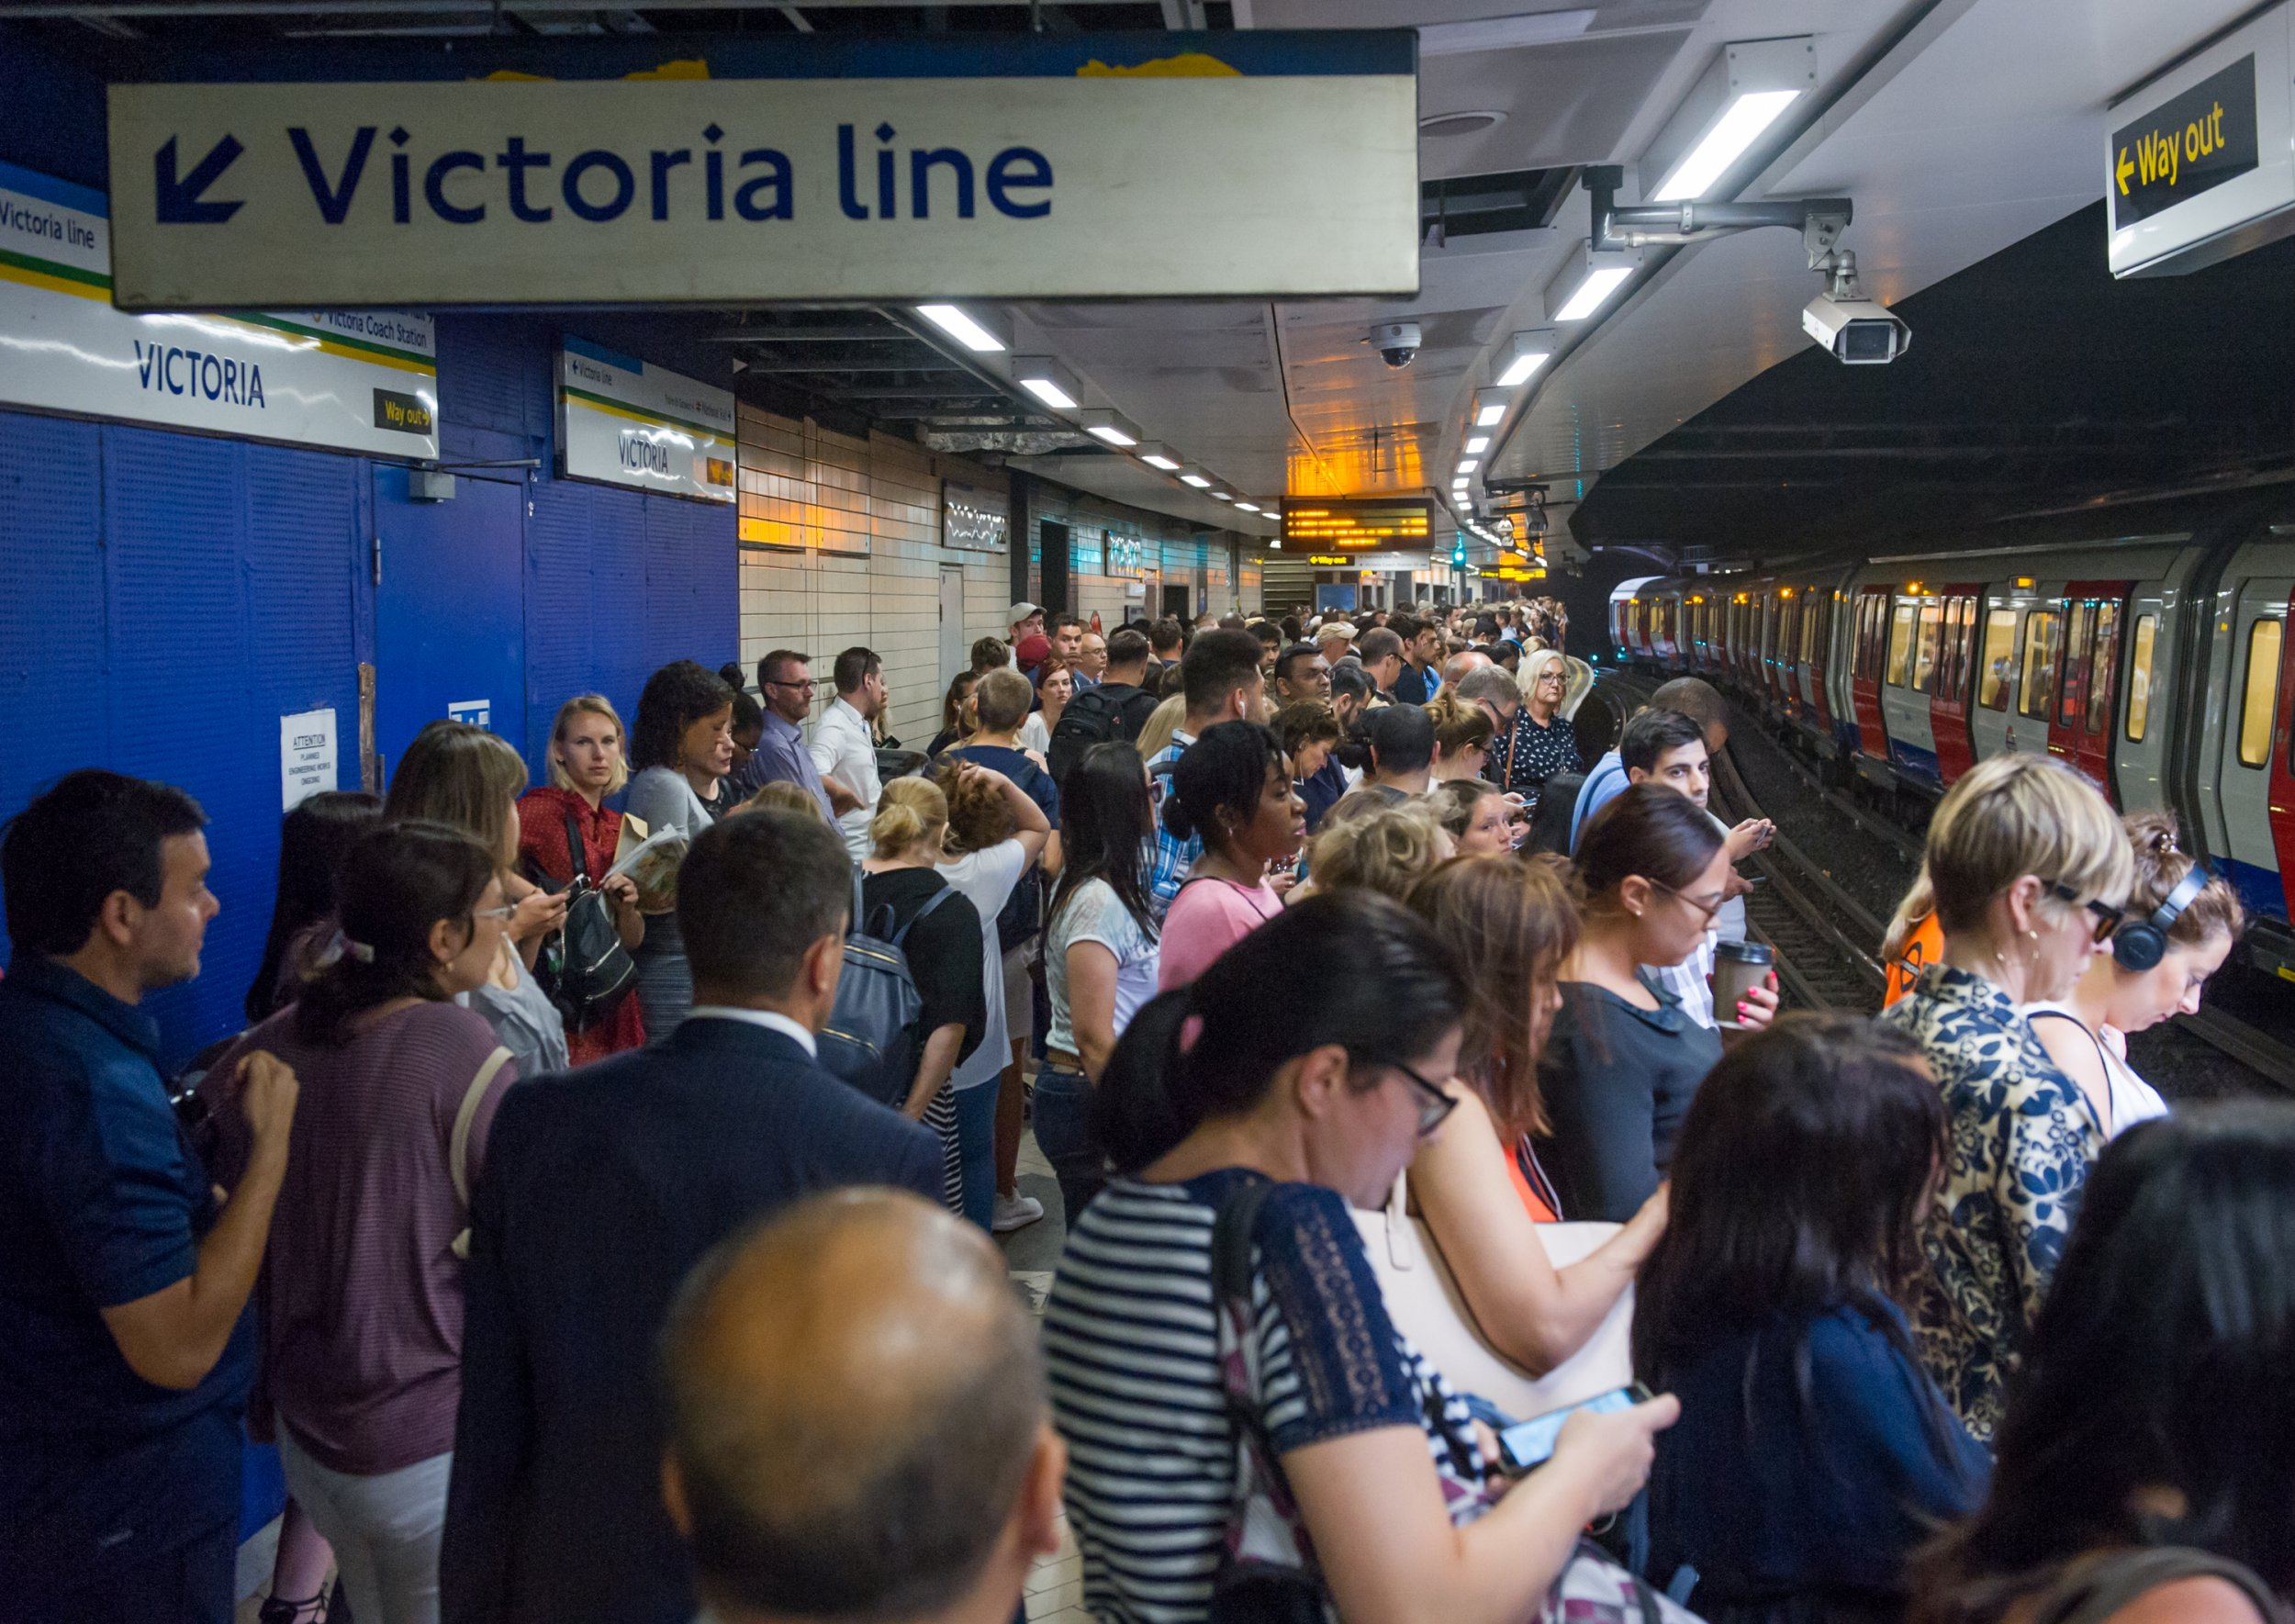 Image ??Licensed to i-Images Picture Agency. 05/07/2018. London, United Kingdom. London Victoria station delays. View of the District Line Underground platform at Victoria Station. All rail commuters have been warned not to travel via London??Victoria??after a signal failure sparked a meltdown across the network in south London. Hundreds of thousands of commuters were facing travel hell on Thursday morning with Gatwick Express, Southern and Thameslink routes all affected.??The problems are expected to last until the end of the day. Picture by Gustavo Valiente / i-Images